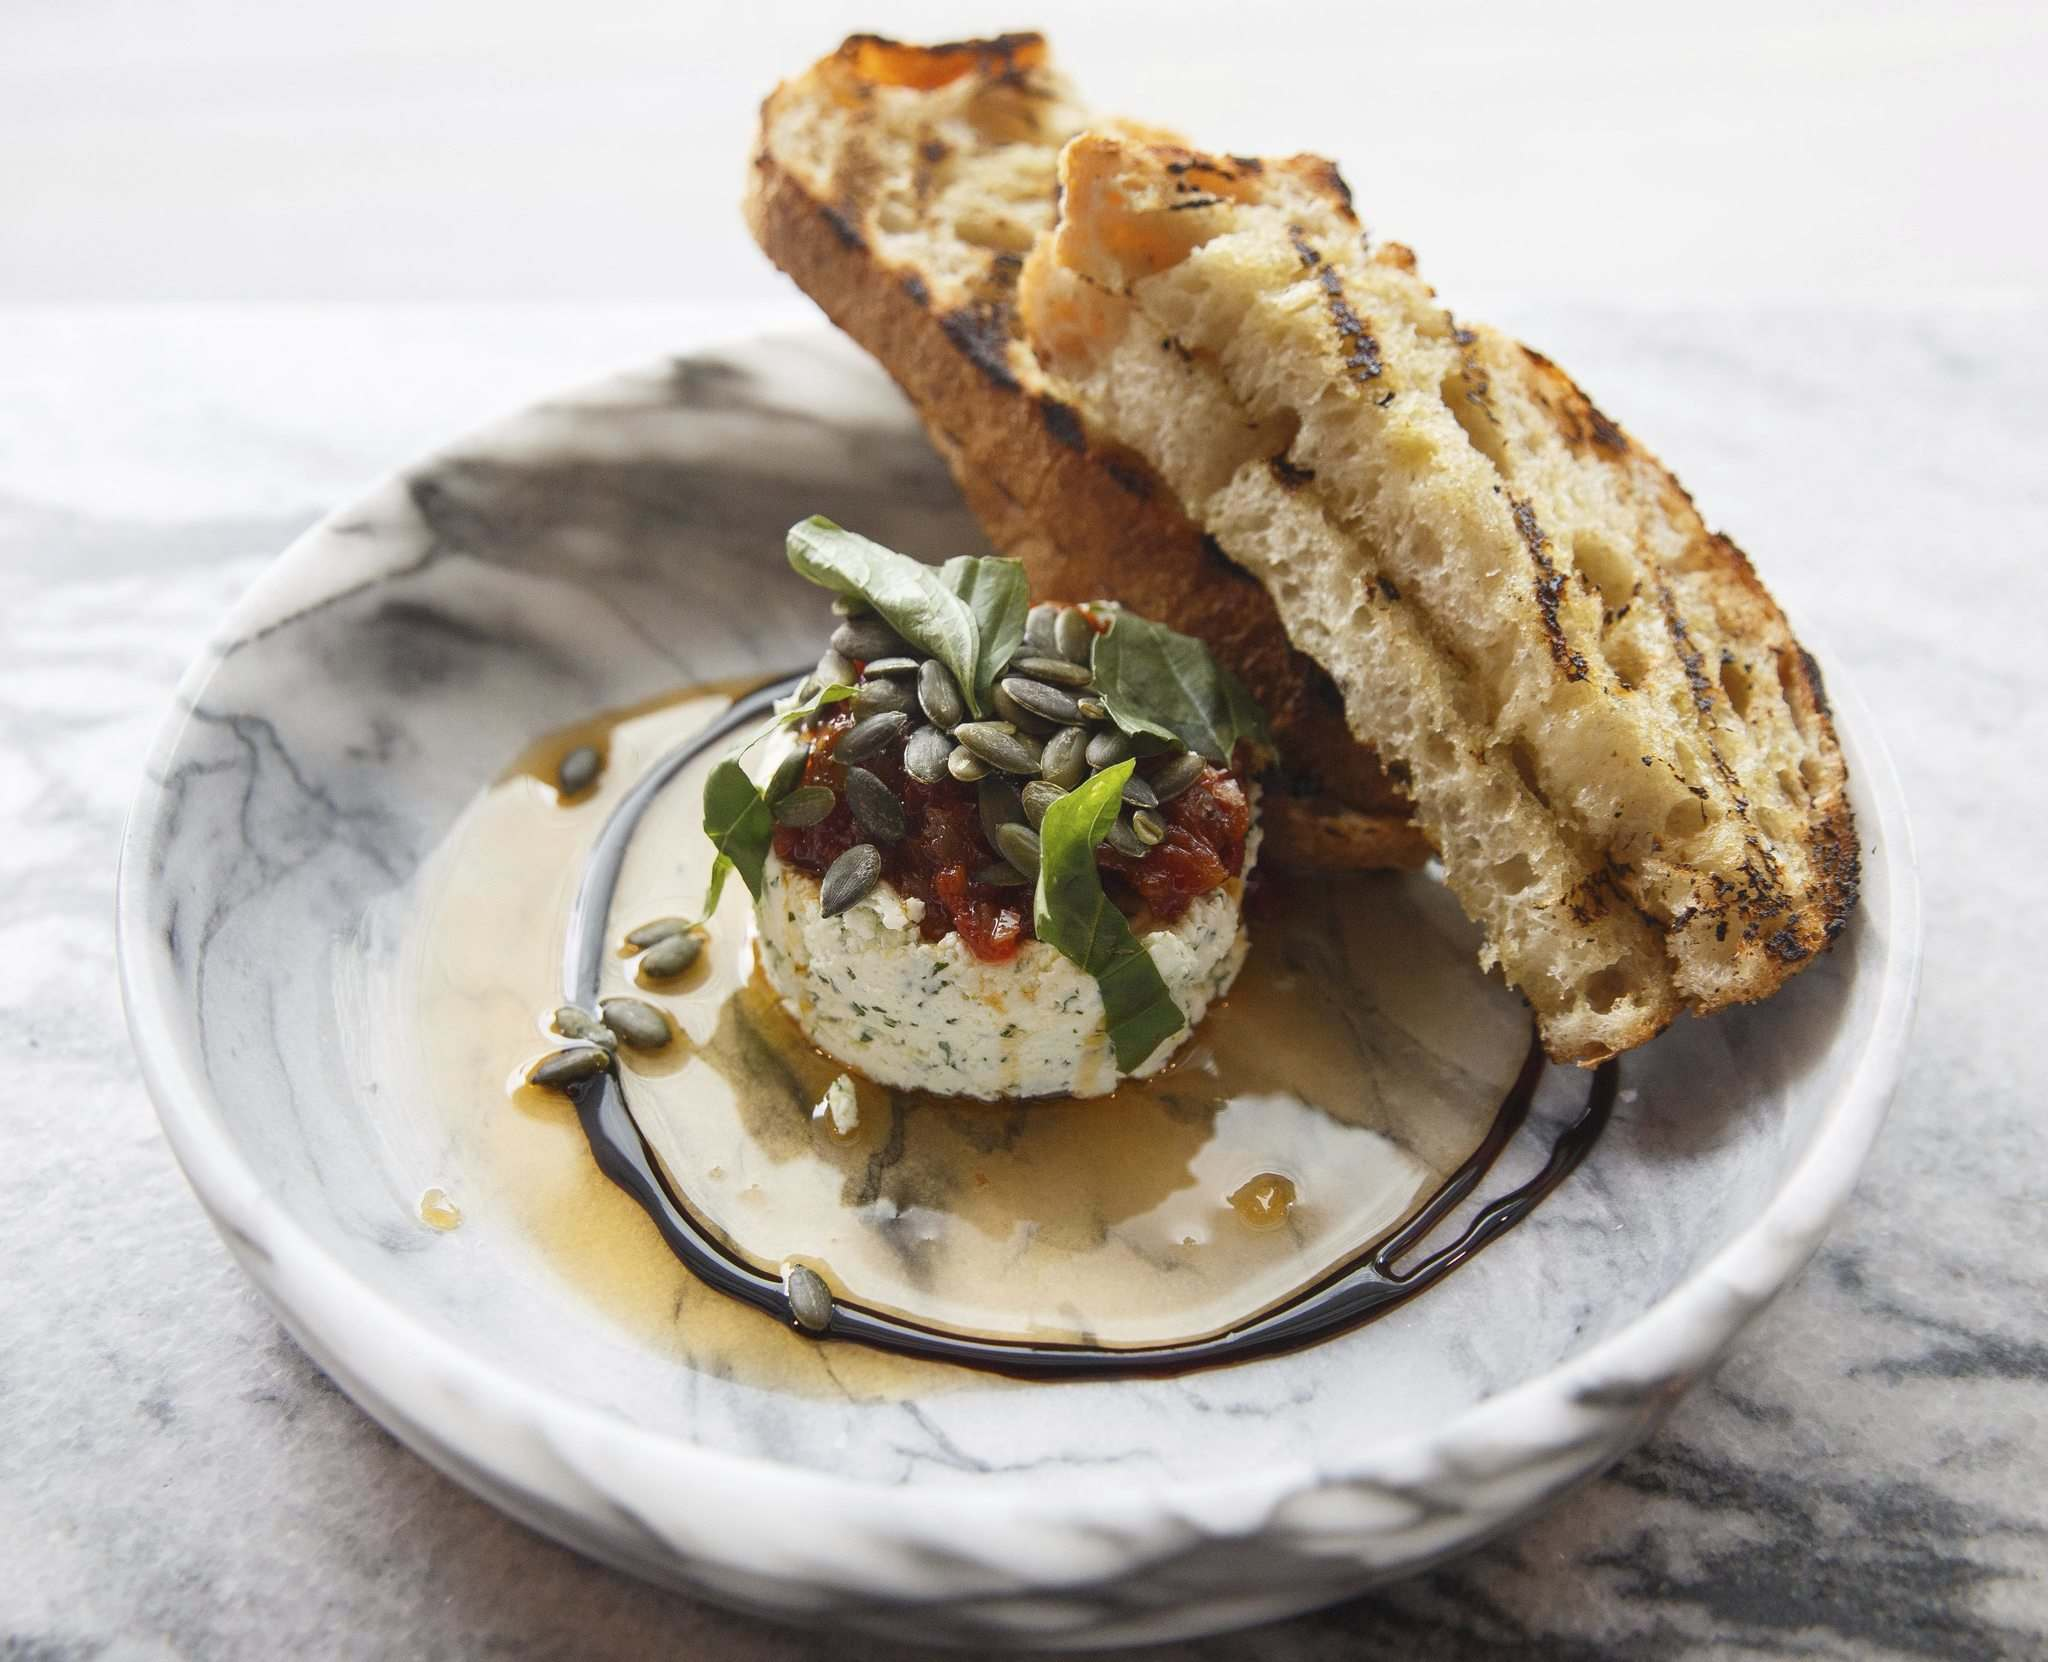 Ricotta Della Piazza San Mariano features tomato jam, chili oil, pumpkin seeds, basil and grilled sour dough.